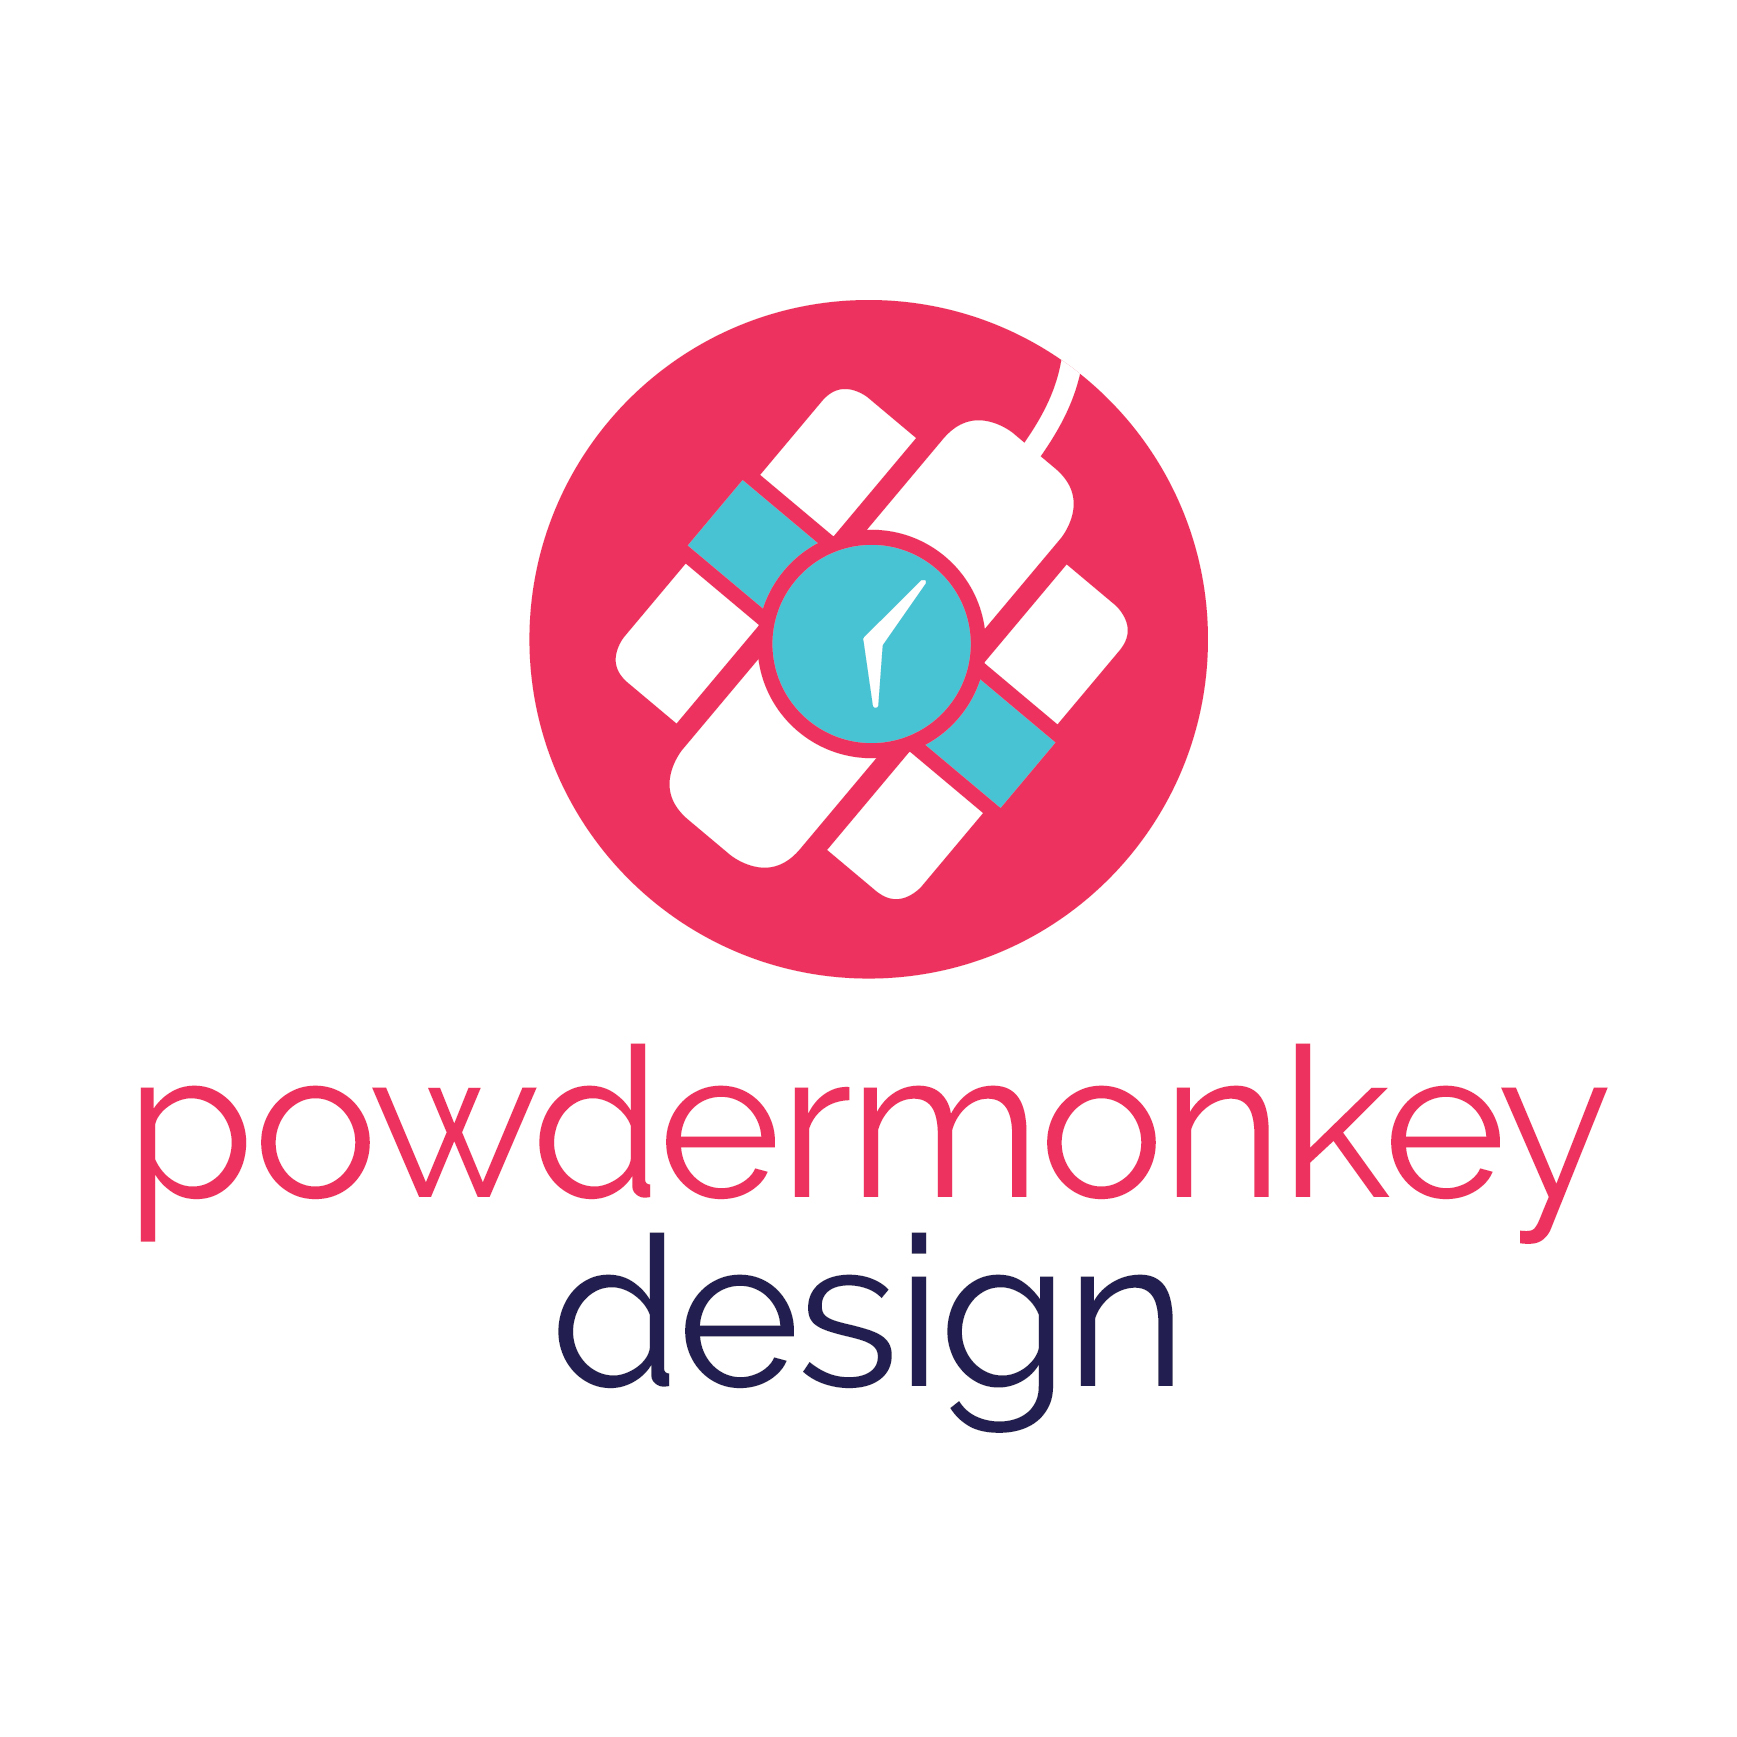 Powdermonkey Design